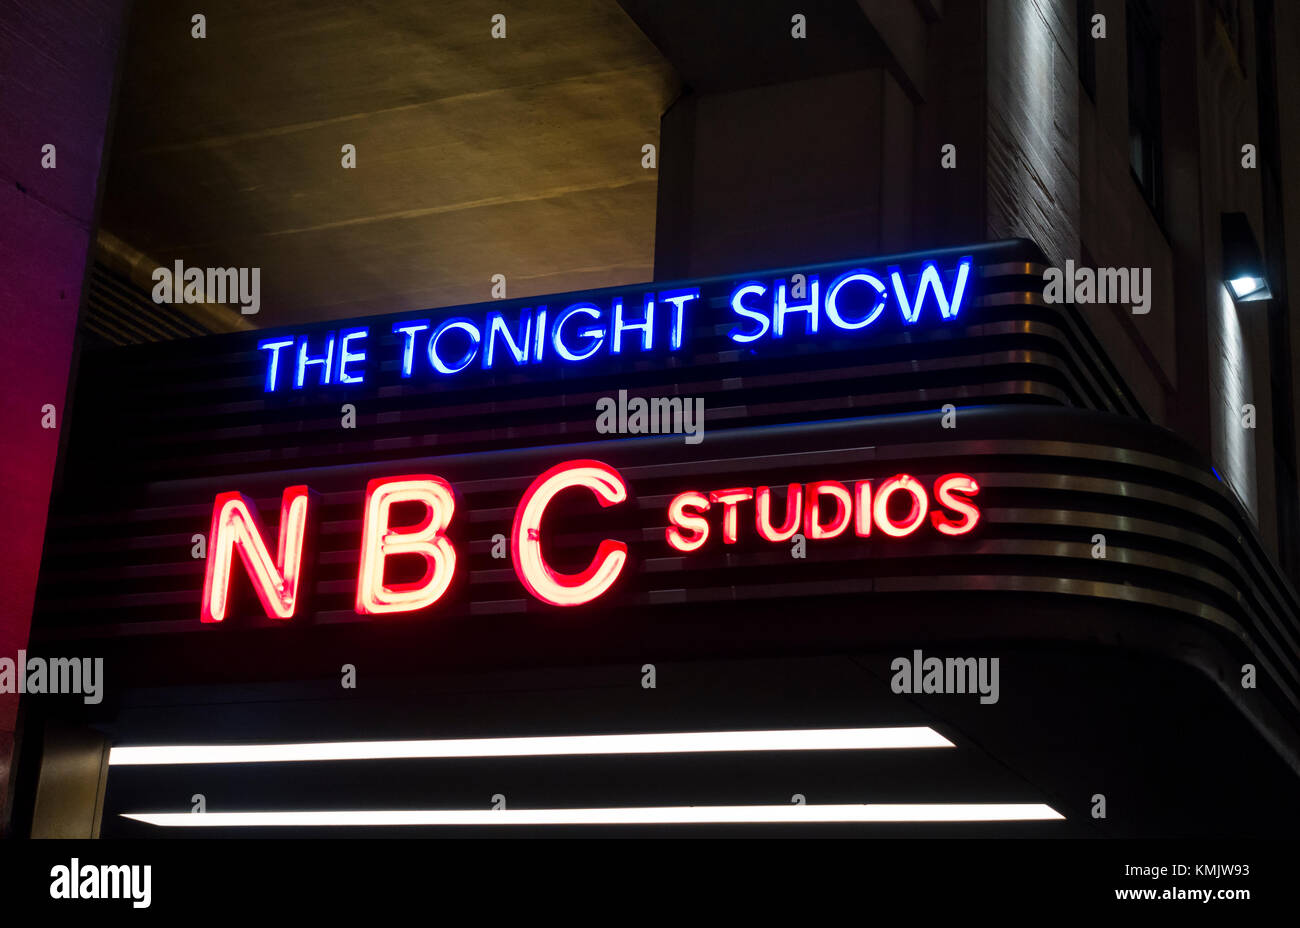 Marquee at the entrance to the Tonight Show at the NBC Studios in New York City - Stock Image